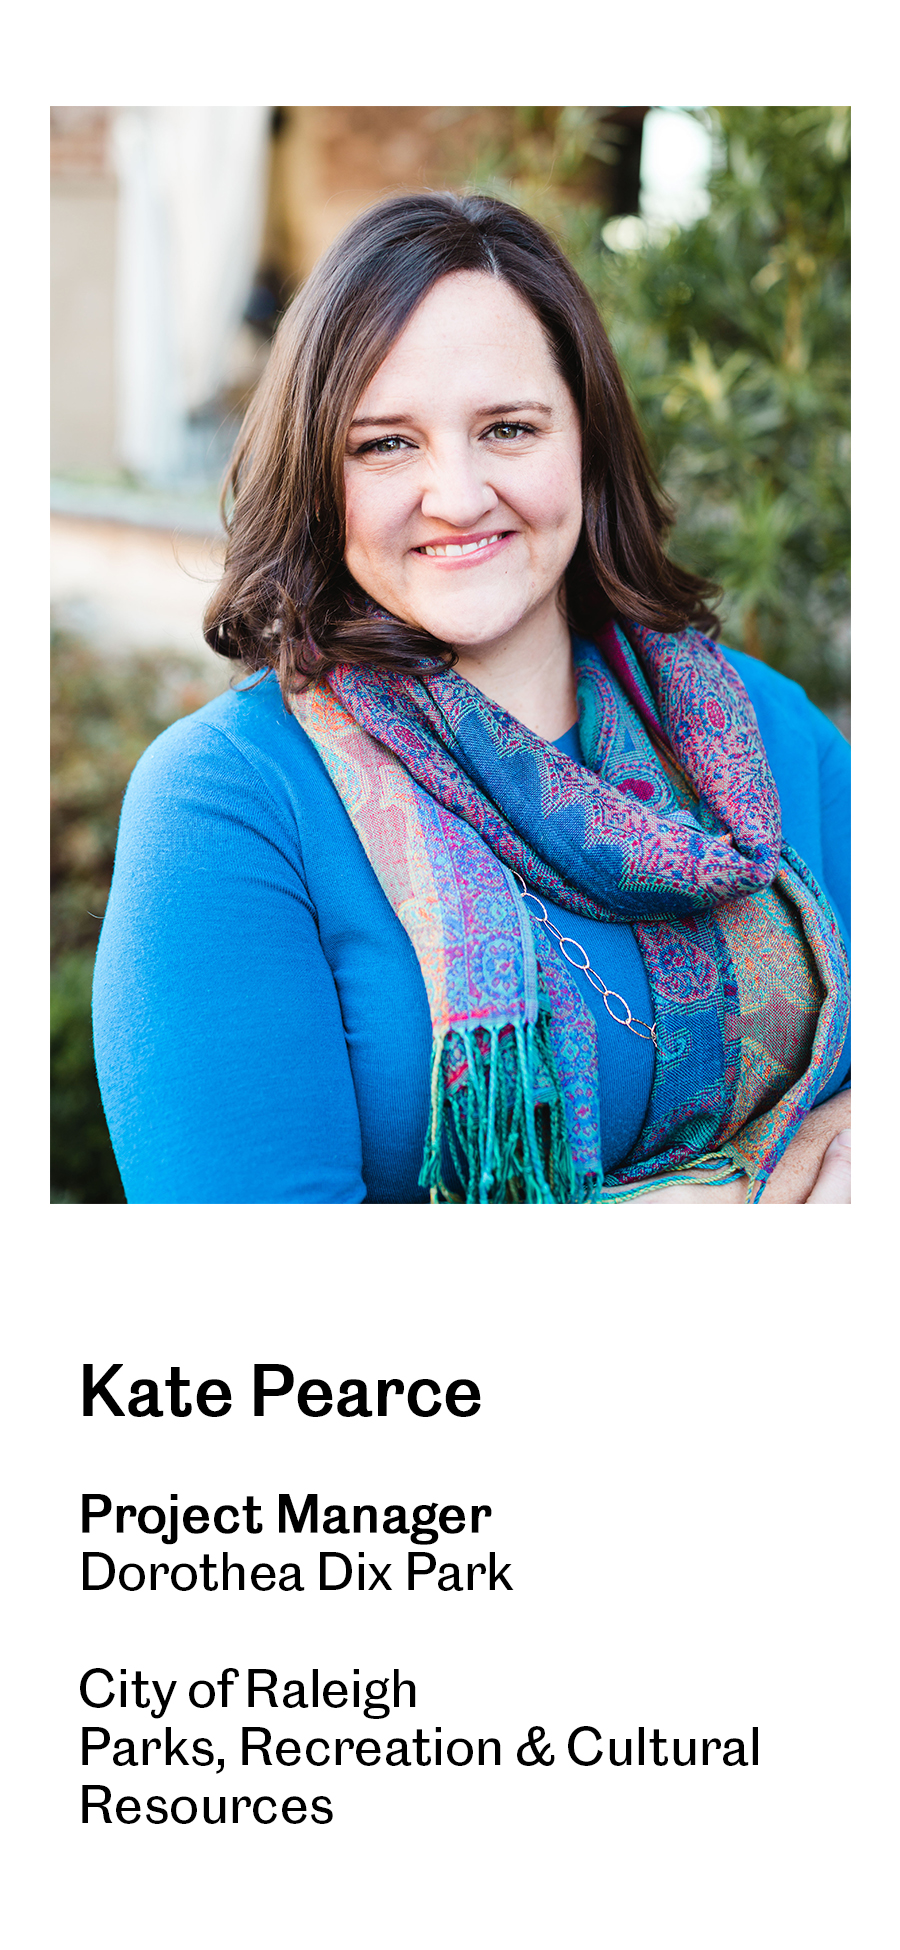 Kate Pearce Headshot